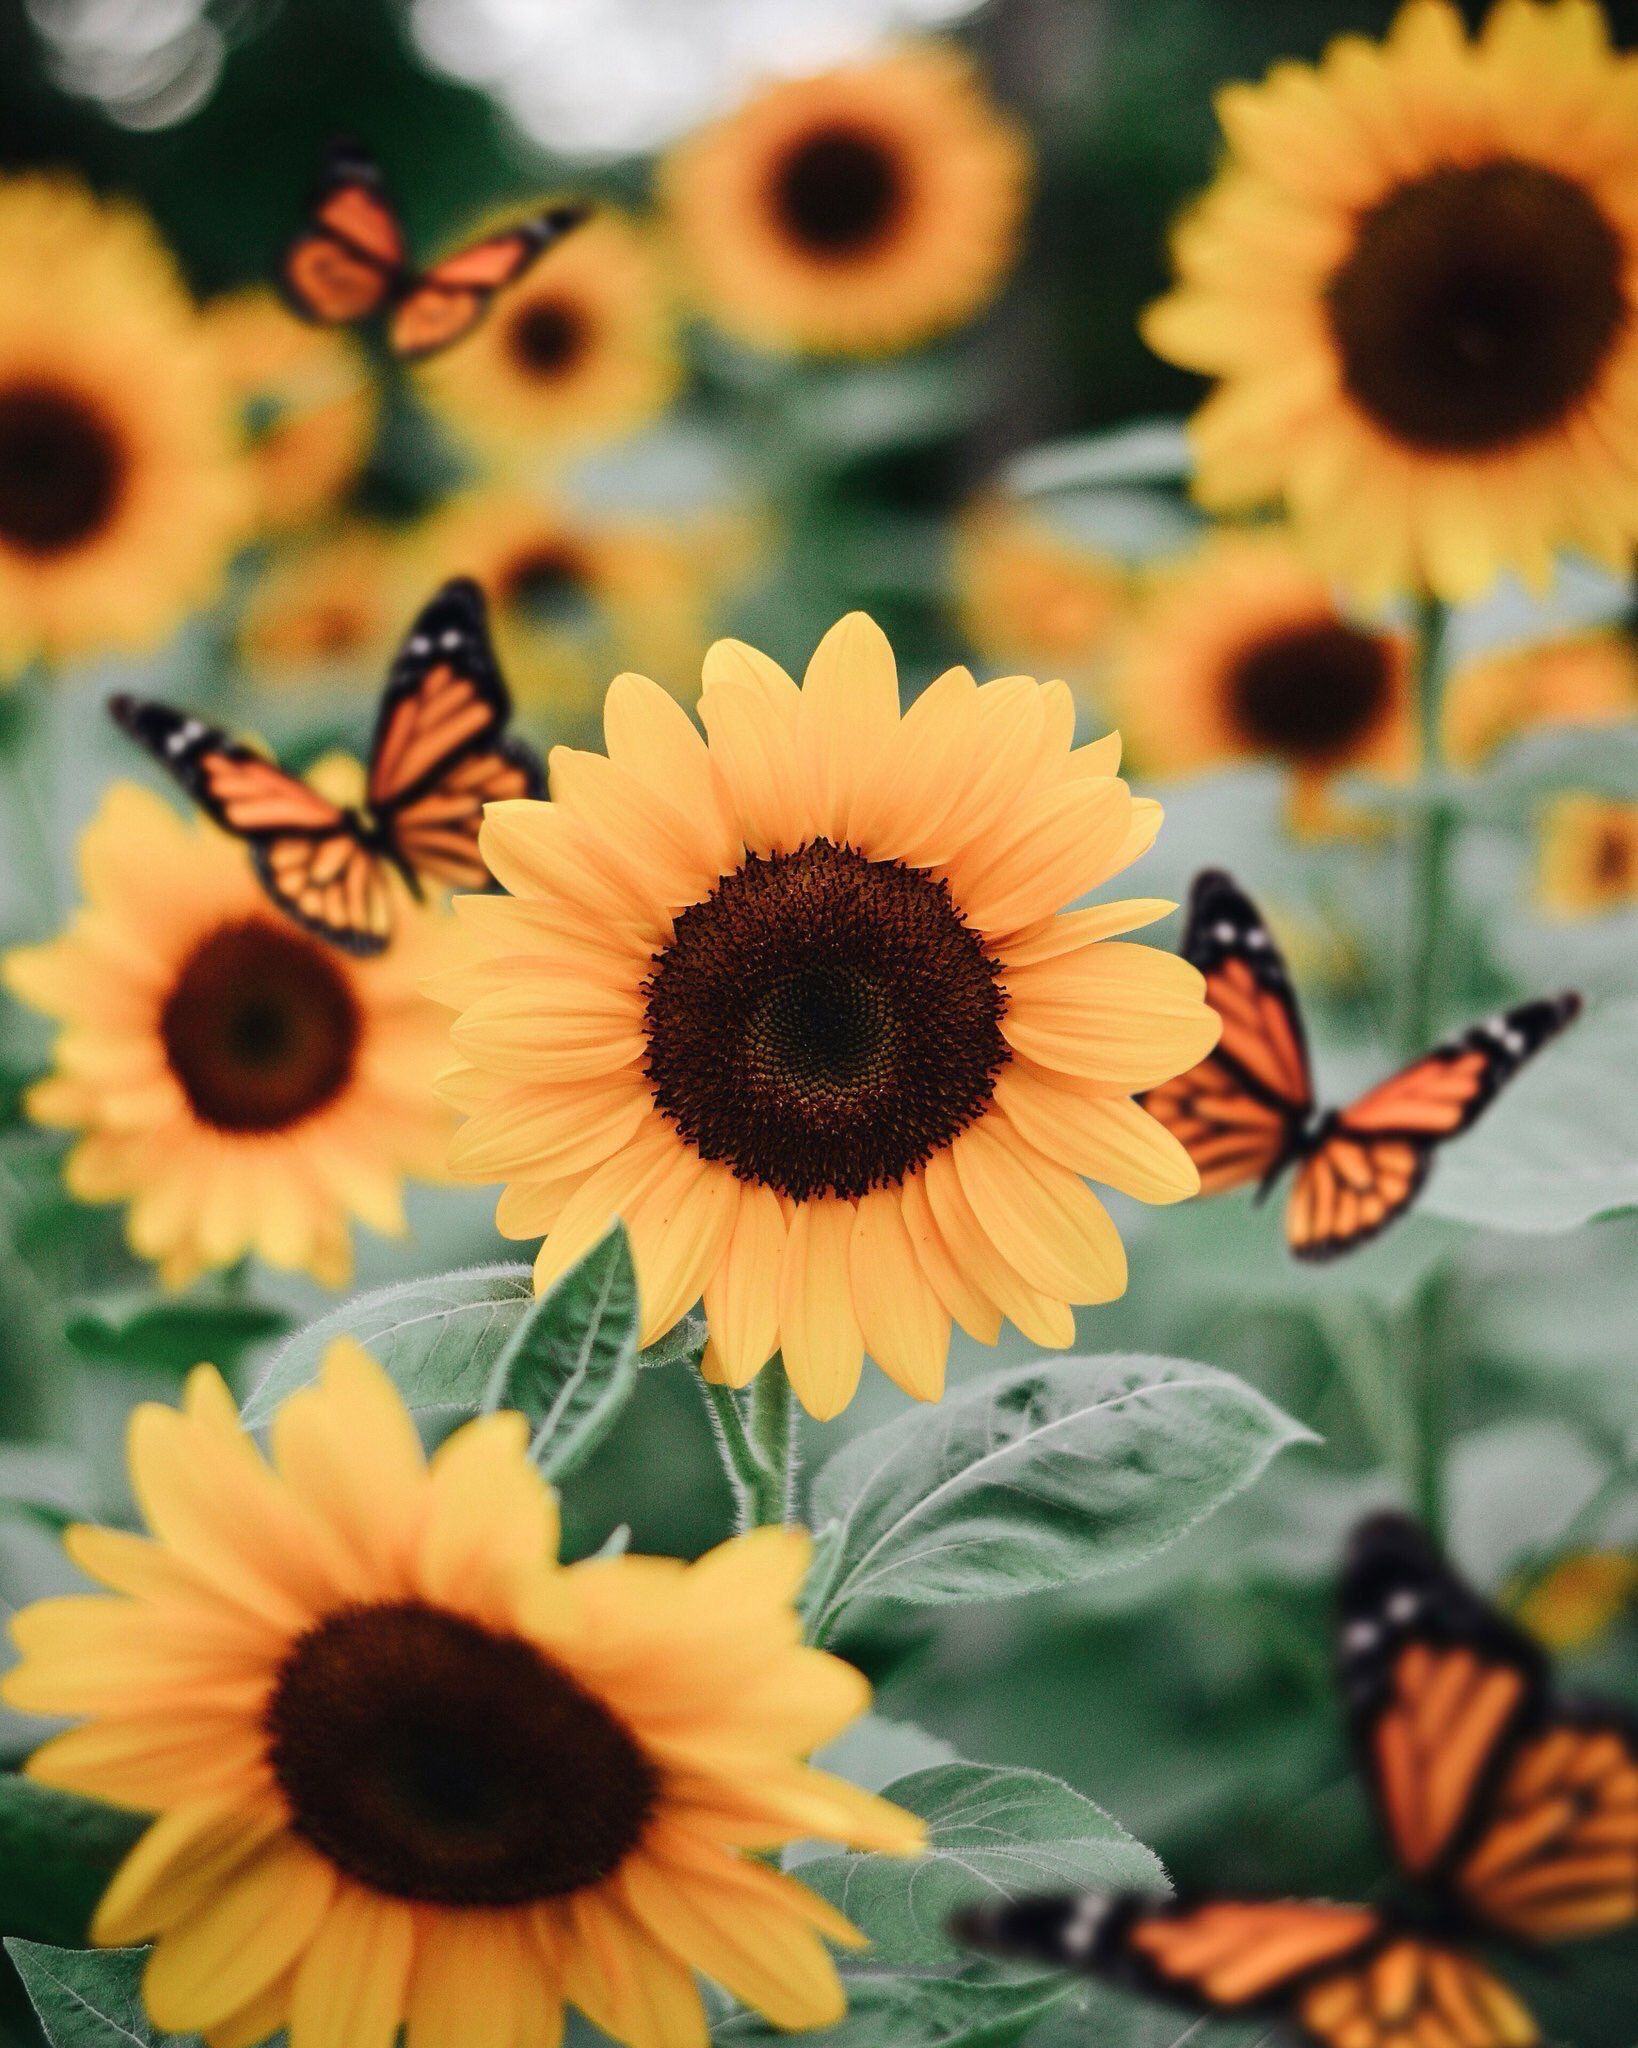 Pin By Dartmouth Cullen On You Re A Sunflower In 2020 Sunflower Wallpaper Sunflower Pictures Flower Wallpaper